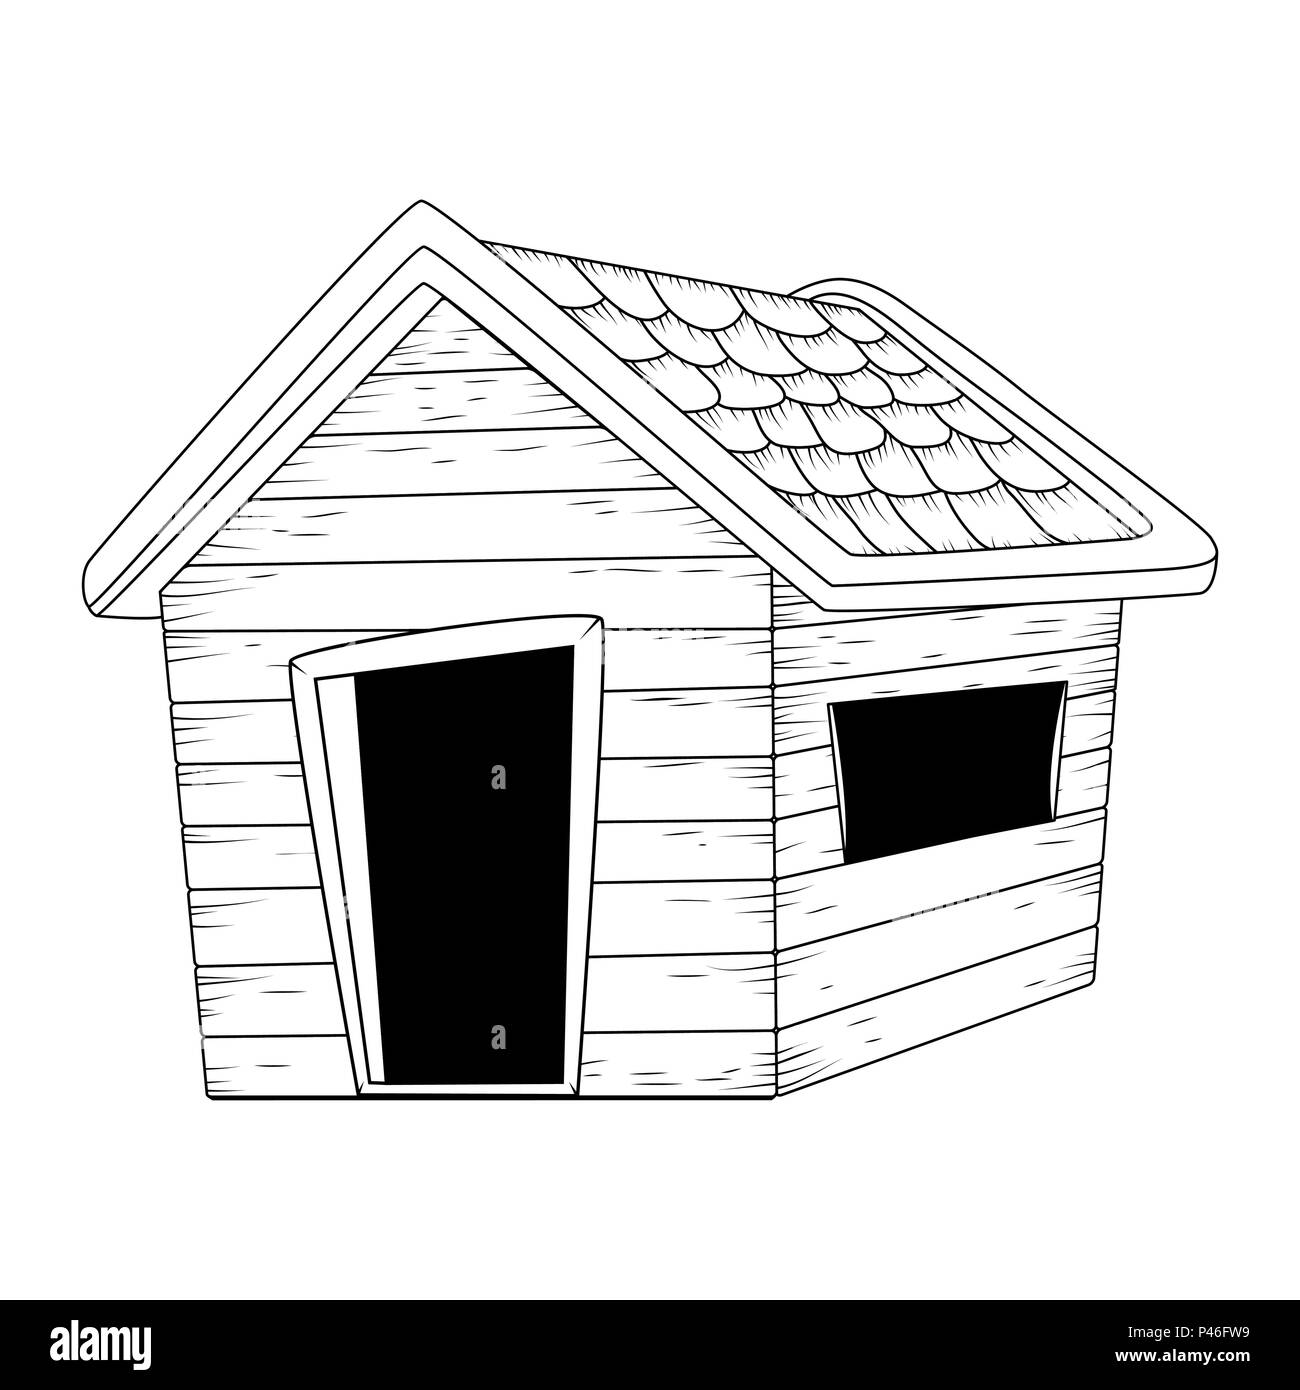 wooden house outline vector design isolated on white - Stock Vector